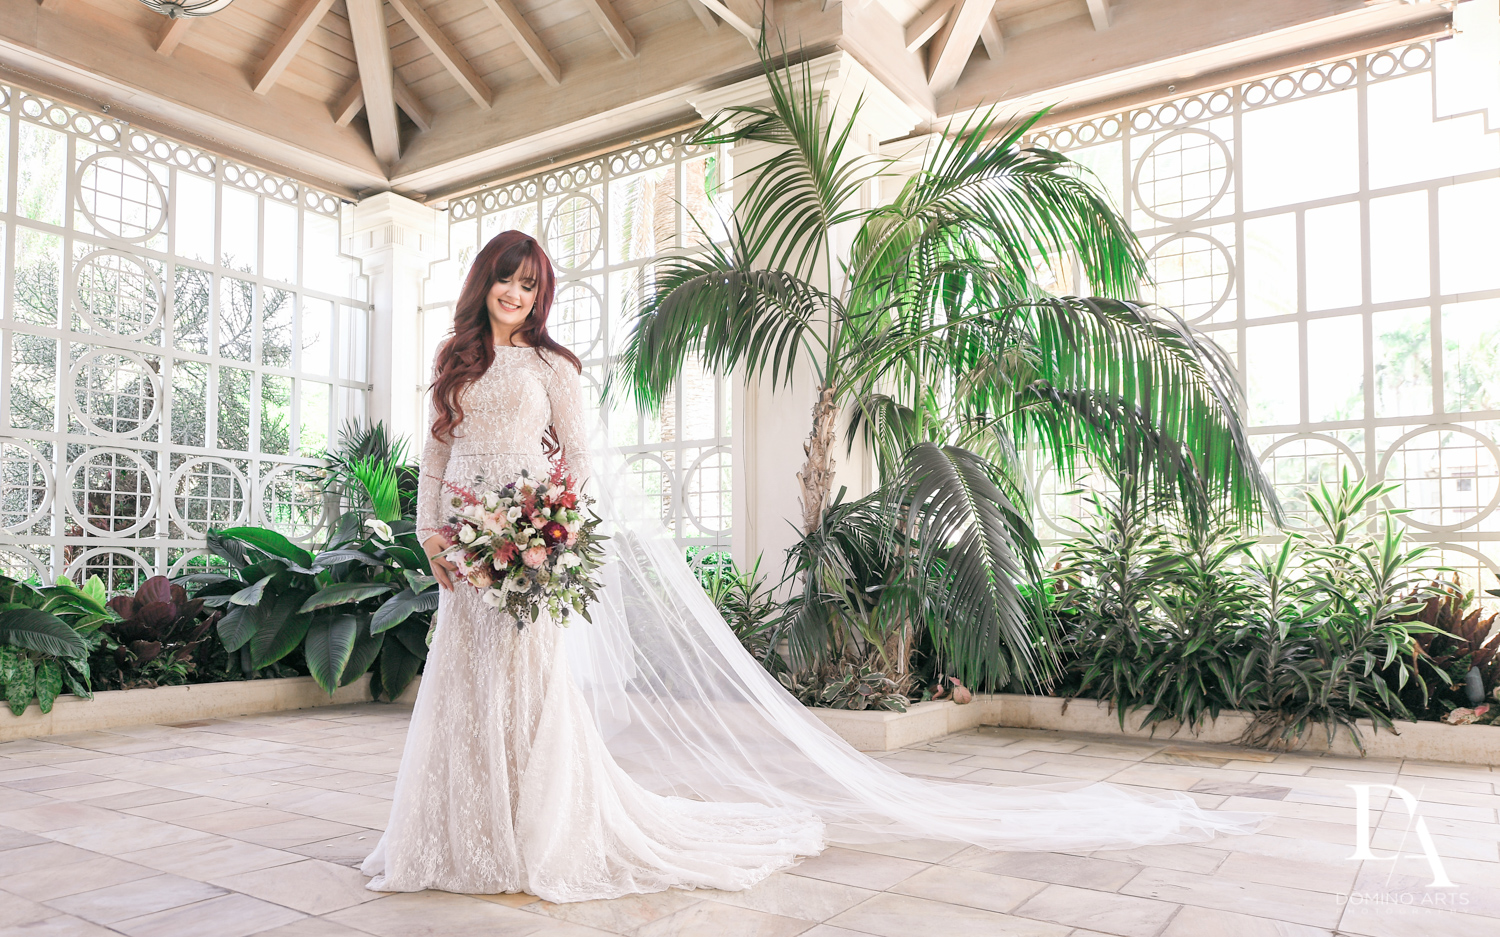 bridal portrait at Vintage Garden Wedding at Flagler Museum Palm Beach by Domino Arts Photography